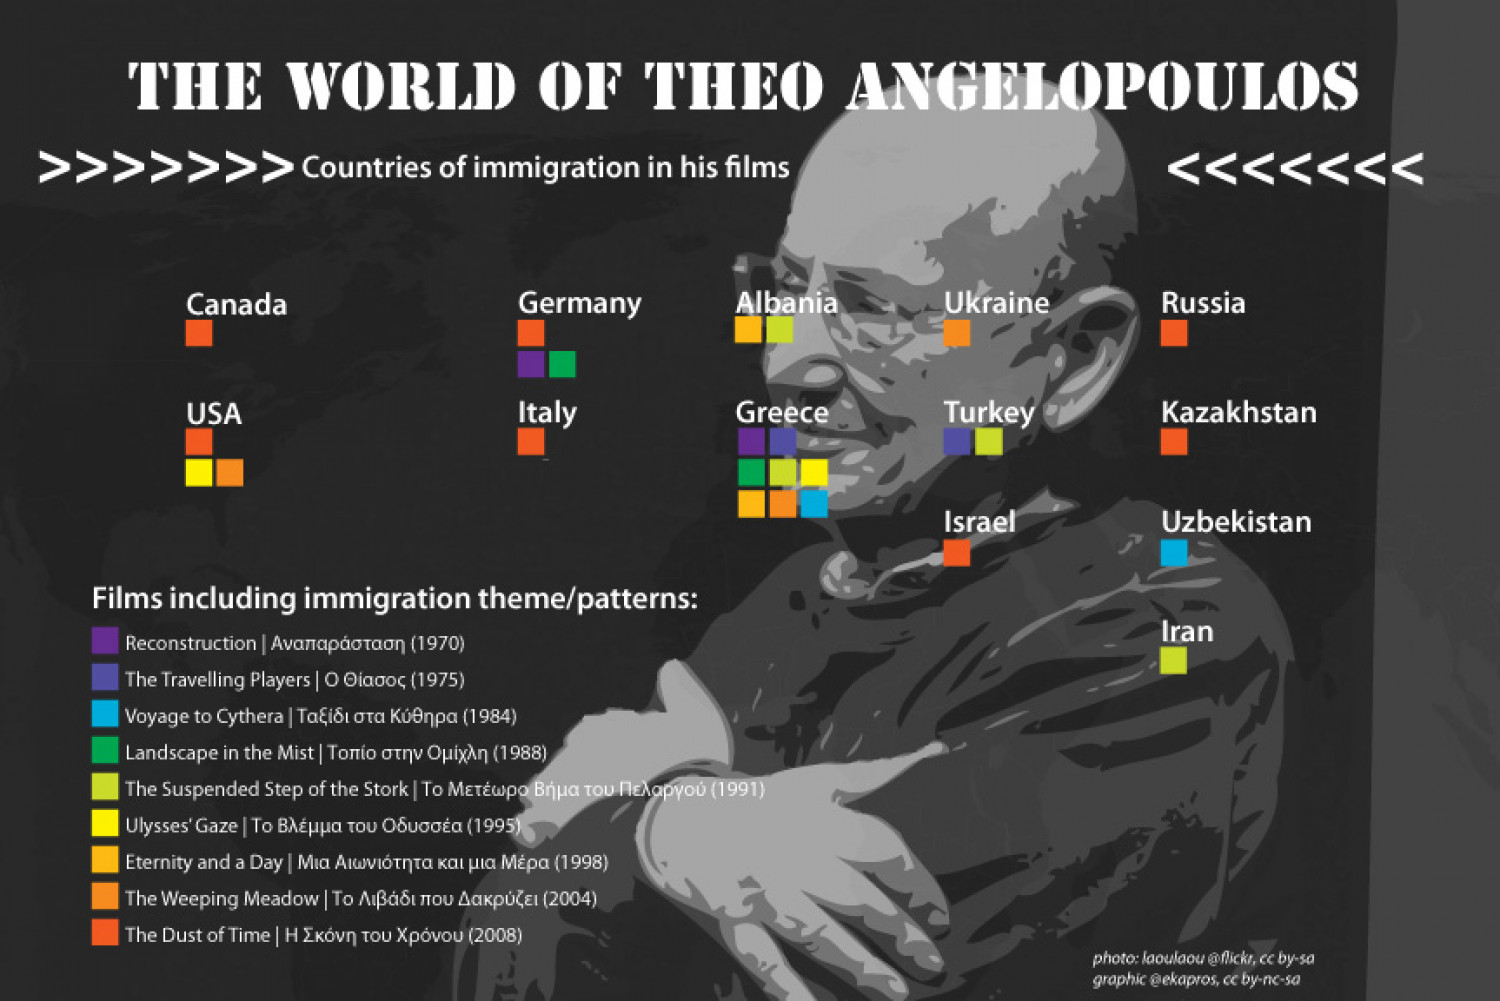 The World of Theo Angelopoulos Infographic